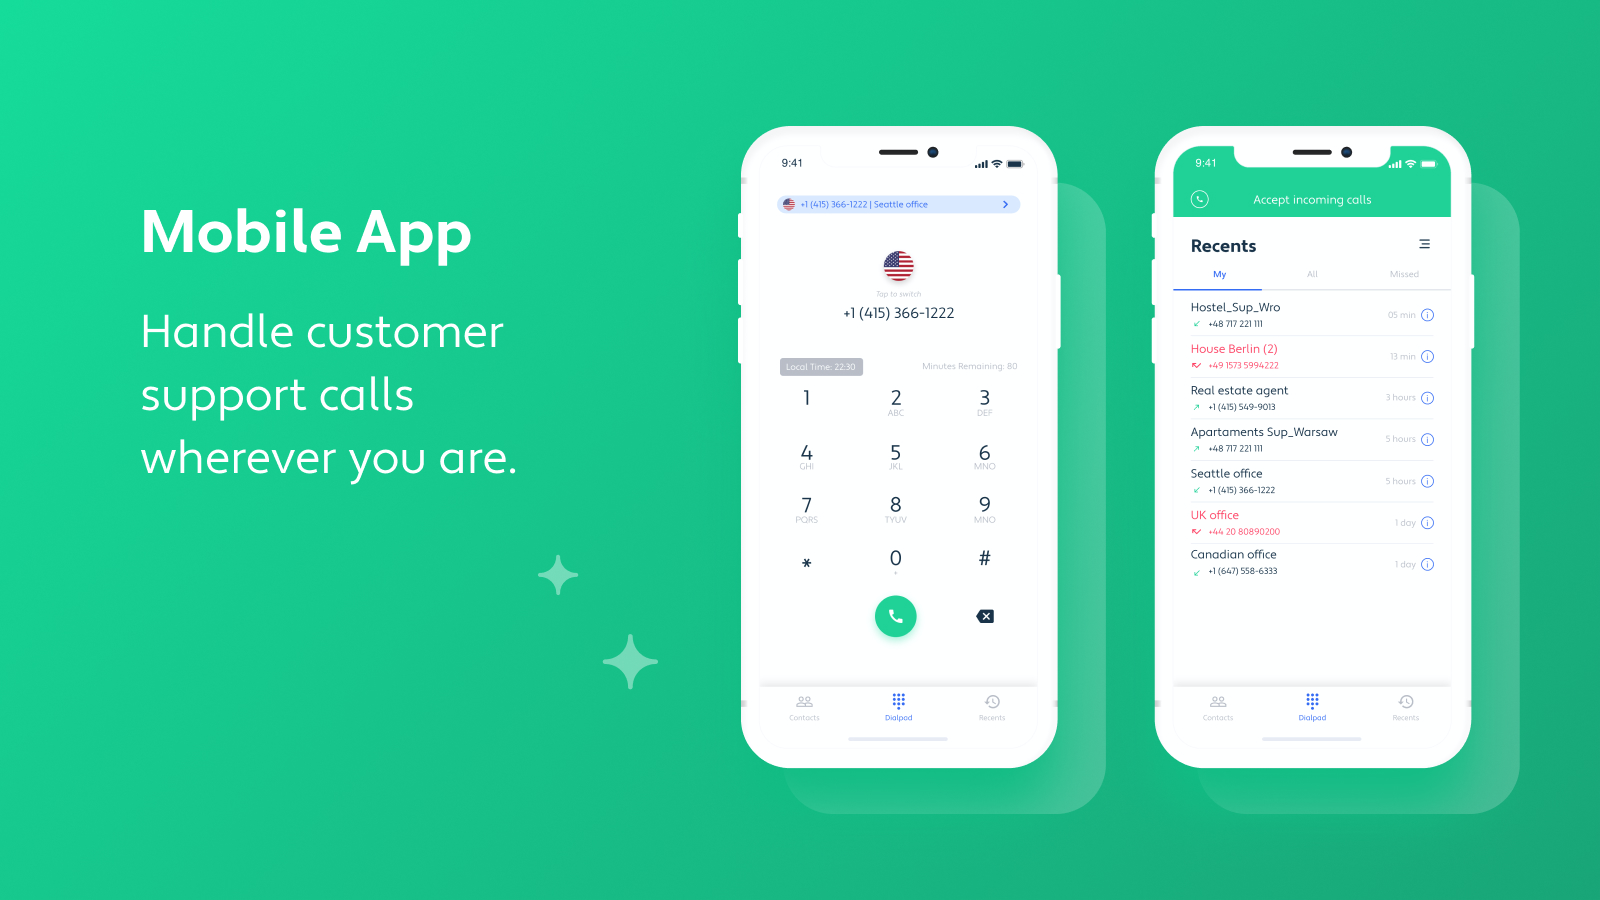 Mobile App - Handle customer calls no matter time and place.